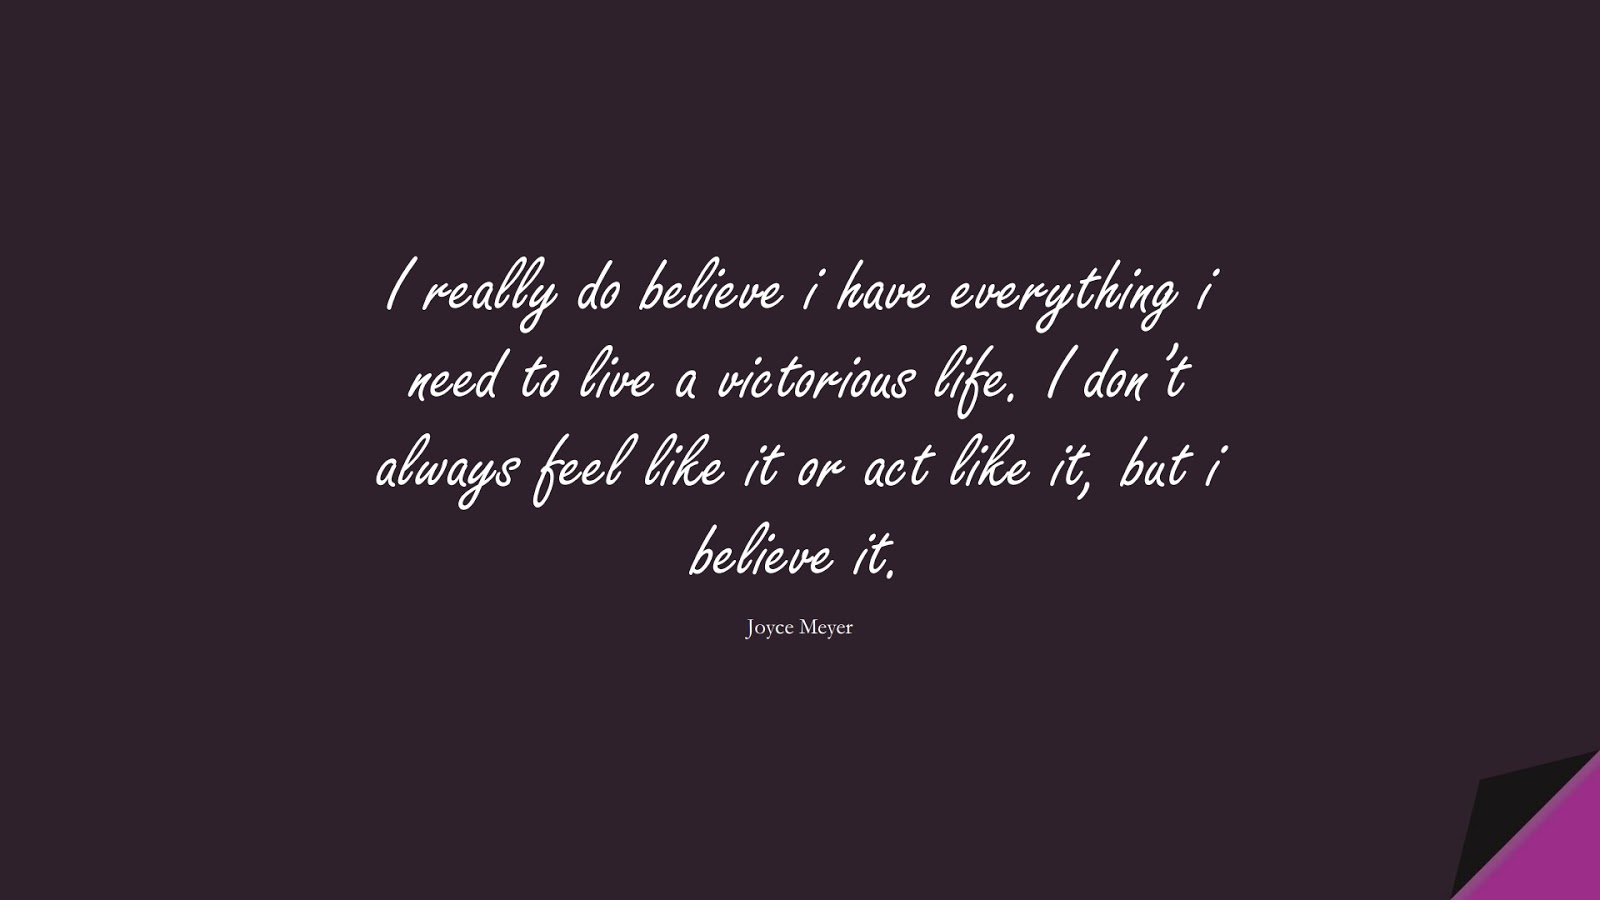 I really do believe i have everything i need to live a victorious life. I don't always feel like it or act like it, but i believe it. (Joyce Meyer);  #PositiveQuotes